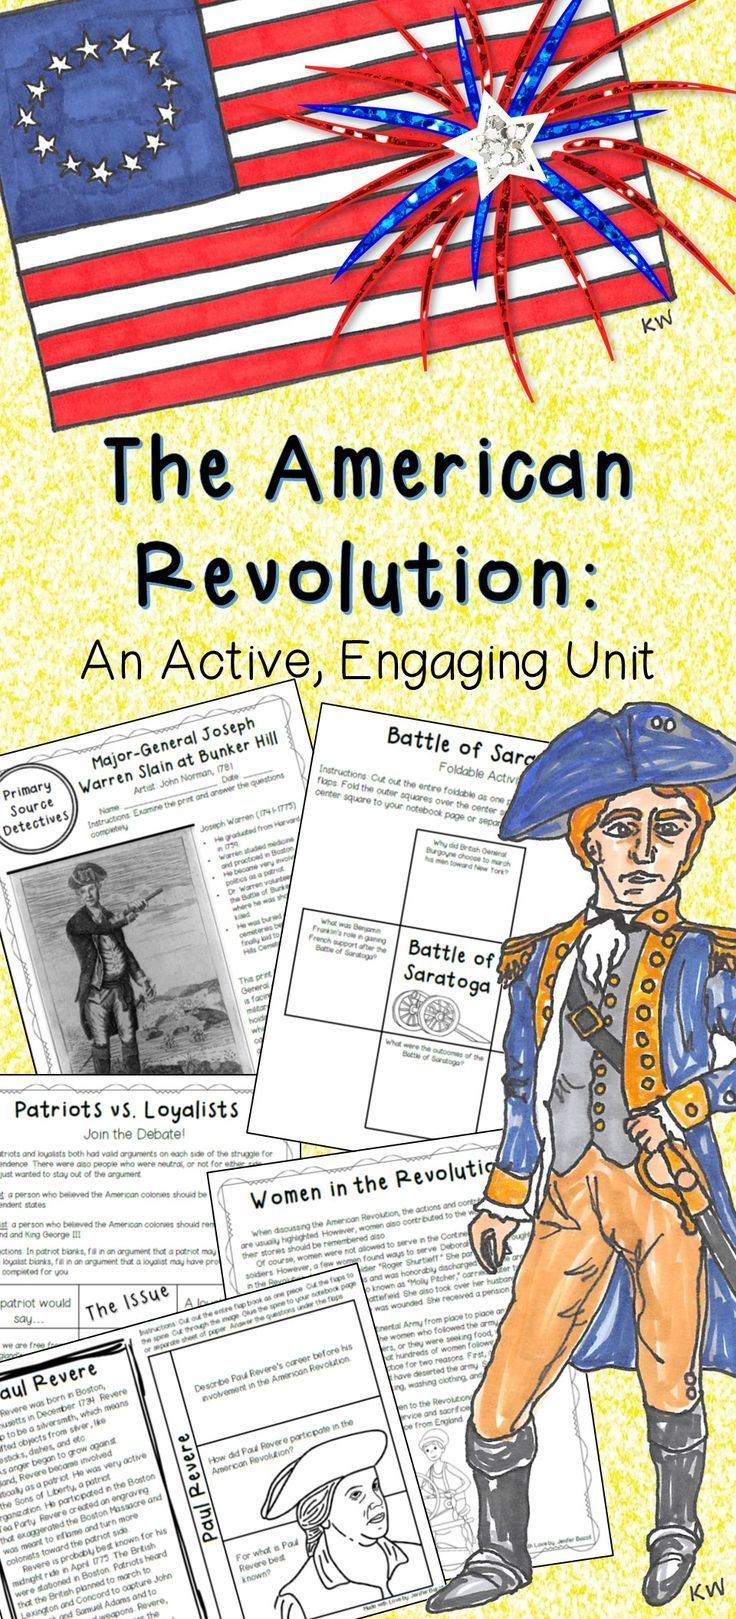 Are you looking for an engaging unit to use while teaching your students about the American Revolution? You've found it! This unit contains lesson sheets, lesson activities, primary source analysis sheets, secondary source analysis sheets, a Revolutionary individuals and groups section, a scoot game, and a unit test.